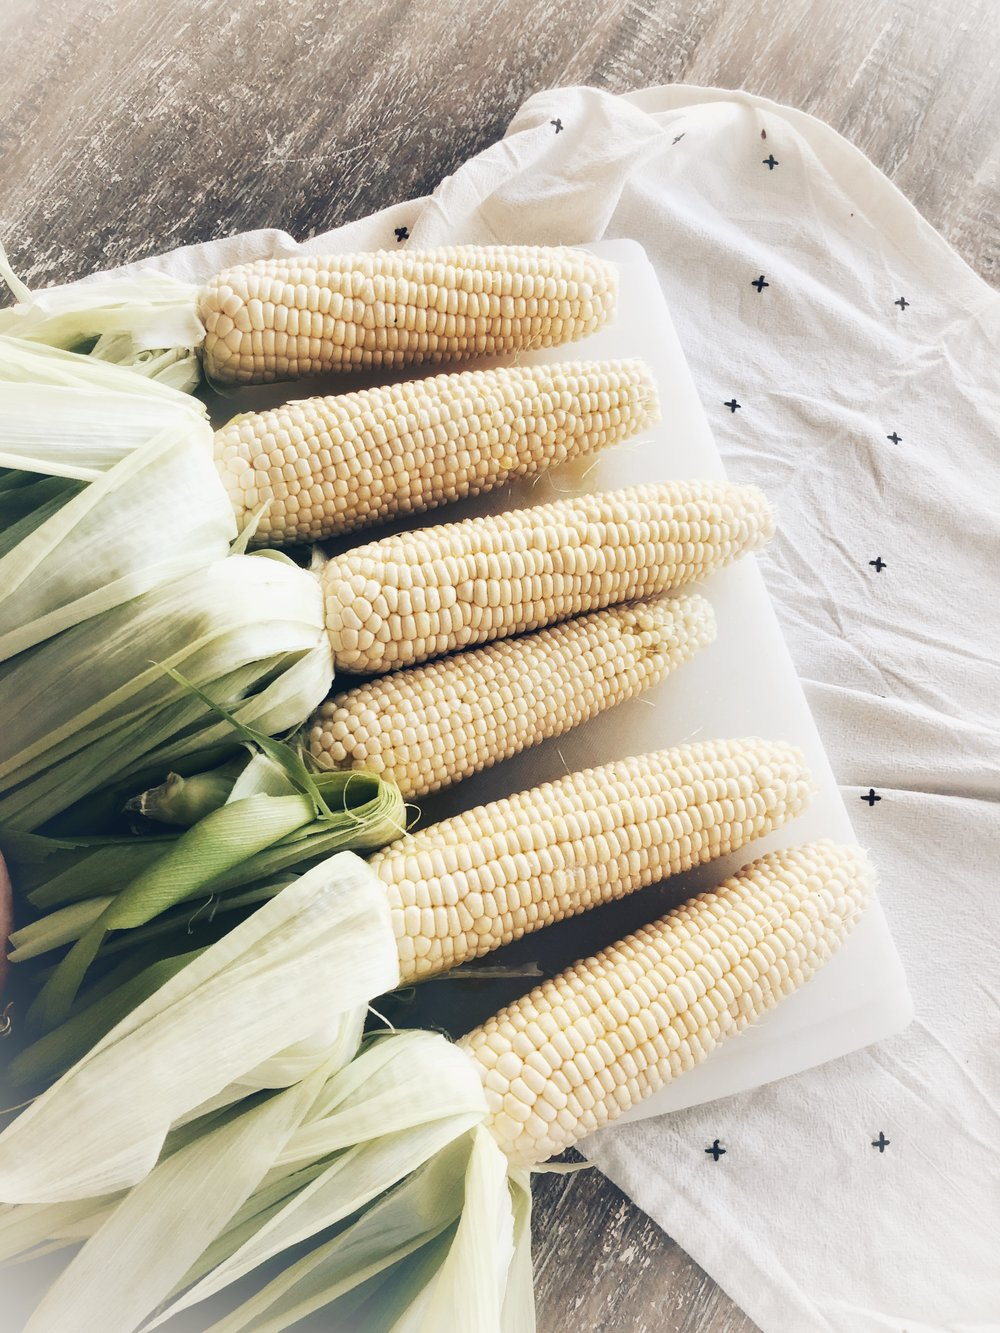 Summer Corn. How to grill it and a few recipes to make with it. www.ChefShayna.com